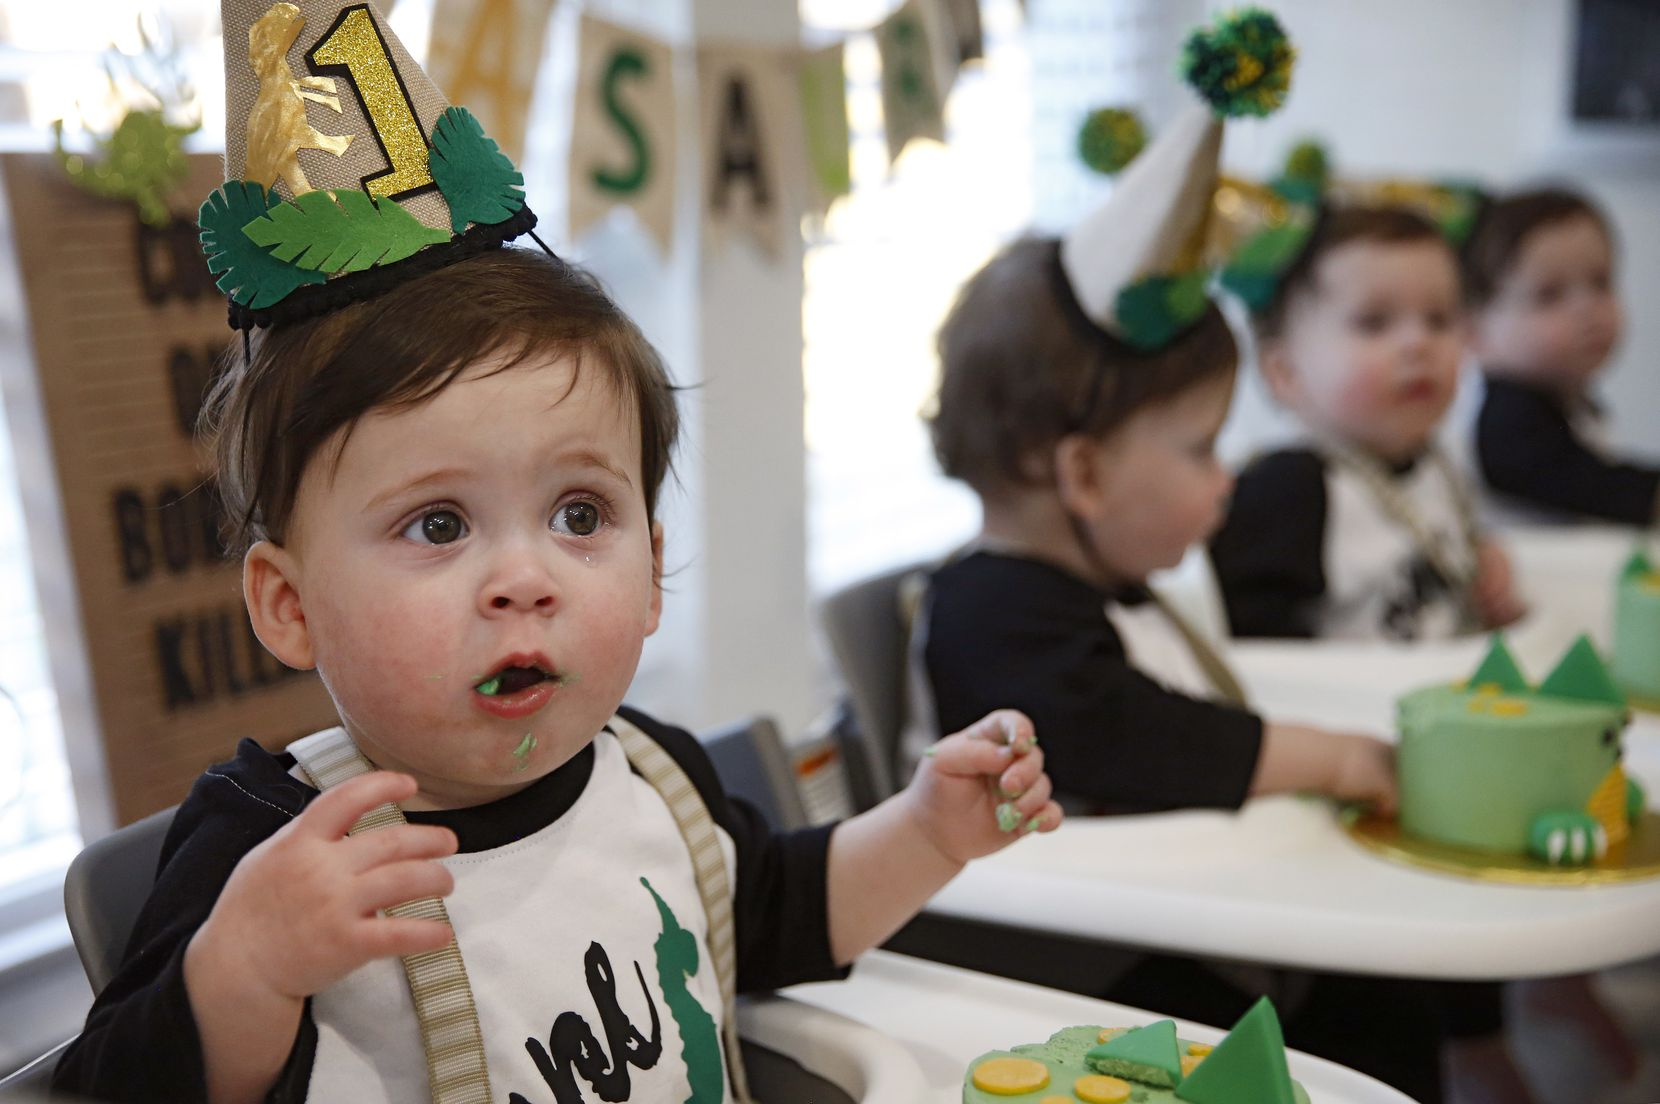 Harrison Marr reacts as he tastes icing on the cake along with his brothers Hardy, Henry, and Hudson Marr during their one-year birthday party at their home on Monday, March 15, 2021, in Grapevine, Texas.